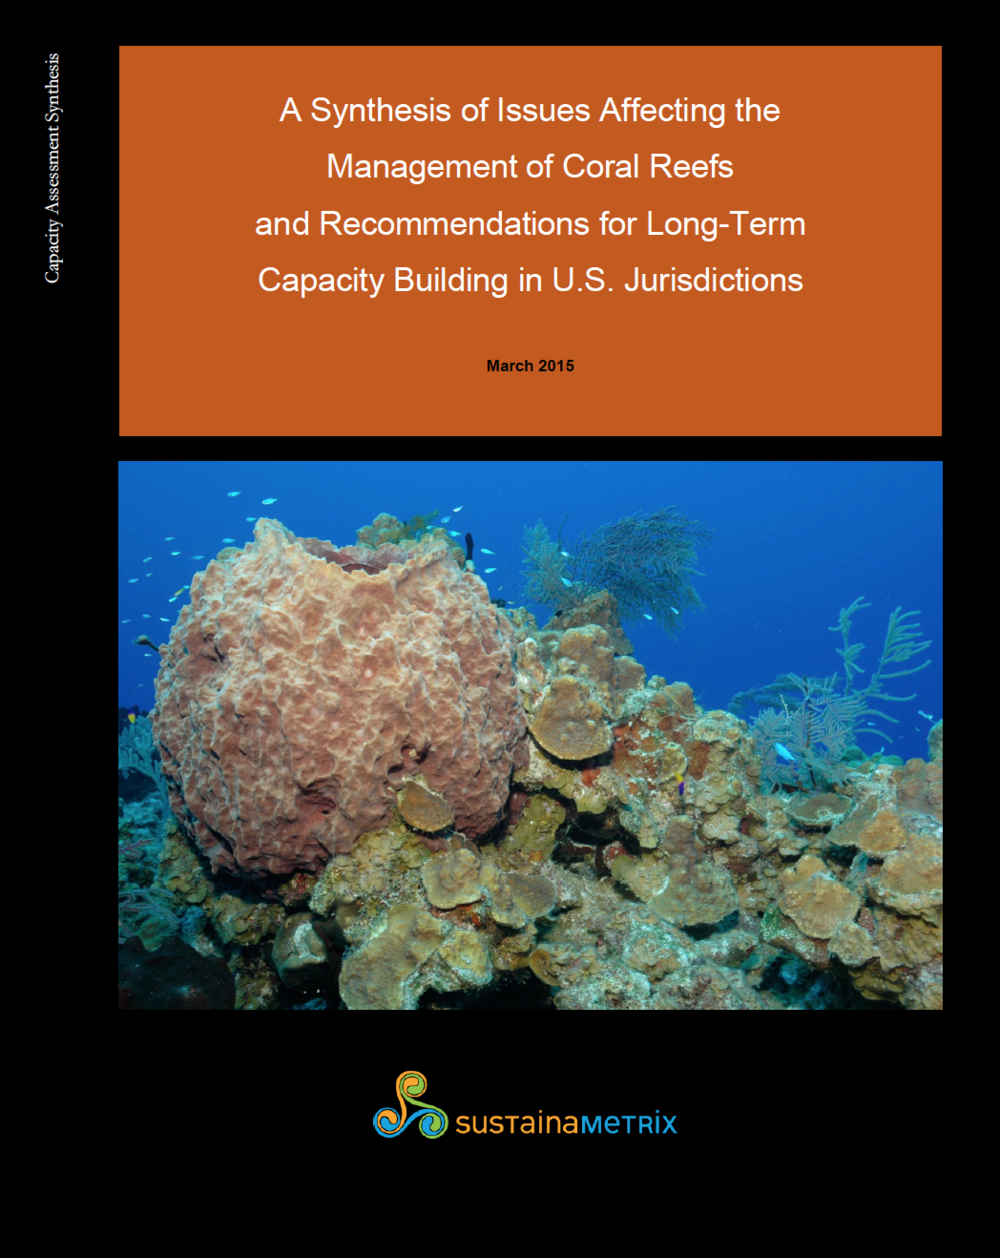 Capacity Assessment for NOAA - There are seven US Flag Coral Reef jurisdictions: Florida, the US Virgin Islands, Puerto Rico, Guam, American Samoa, Hawaii and the Commonwealth of the Northern Mariana Islands. All manage coral reefs and all face a unique combination of challenges in doing so. We provided NOAA with seven capacity assessments and seven reports analyzing the issues facing each jurisdiction, measuring their capacity to face those challenges and recommendations for building management capacity.